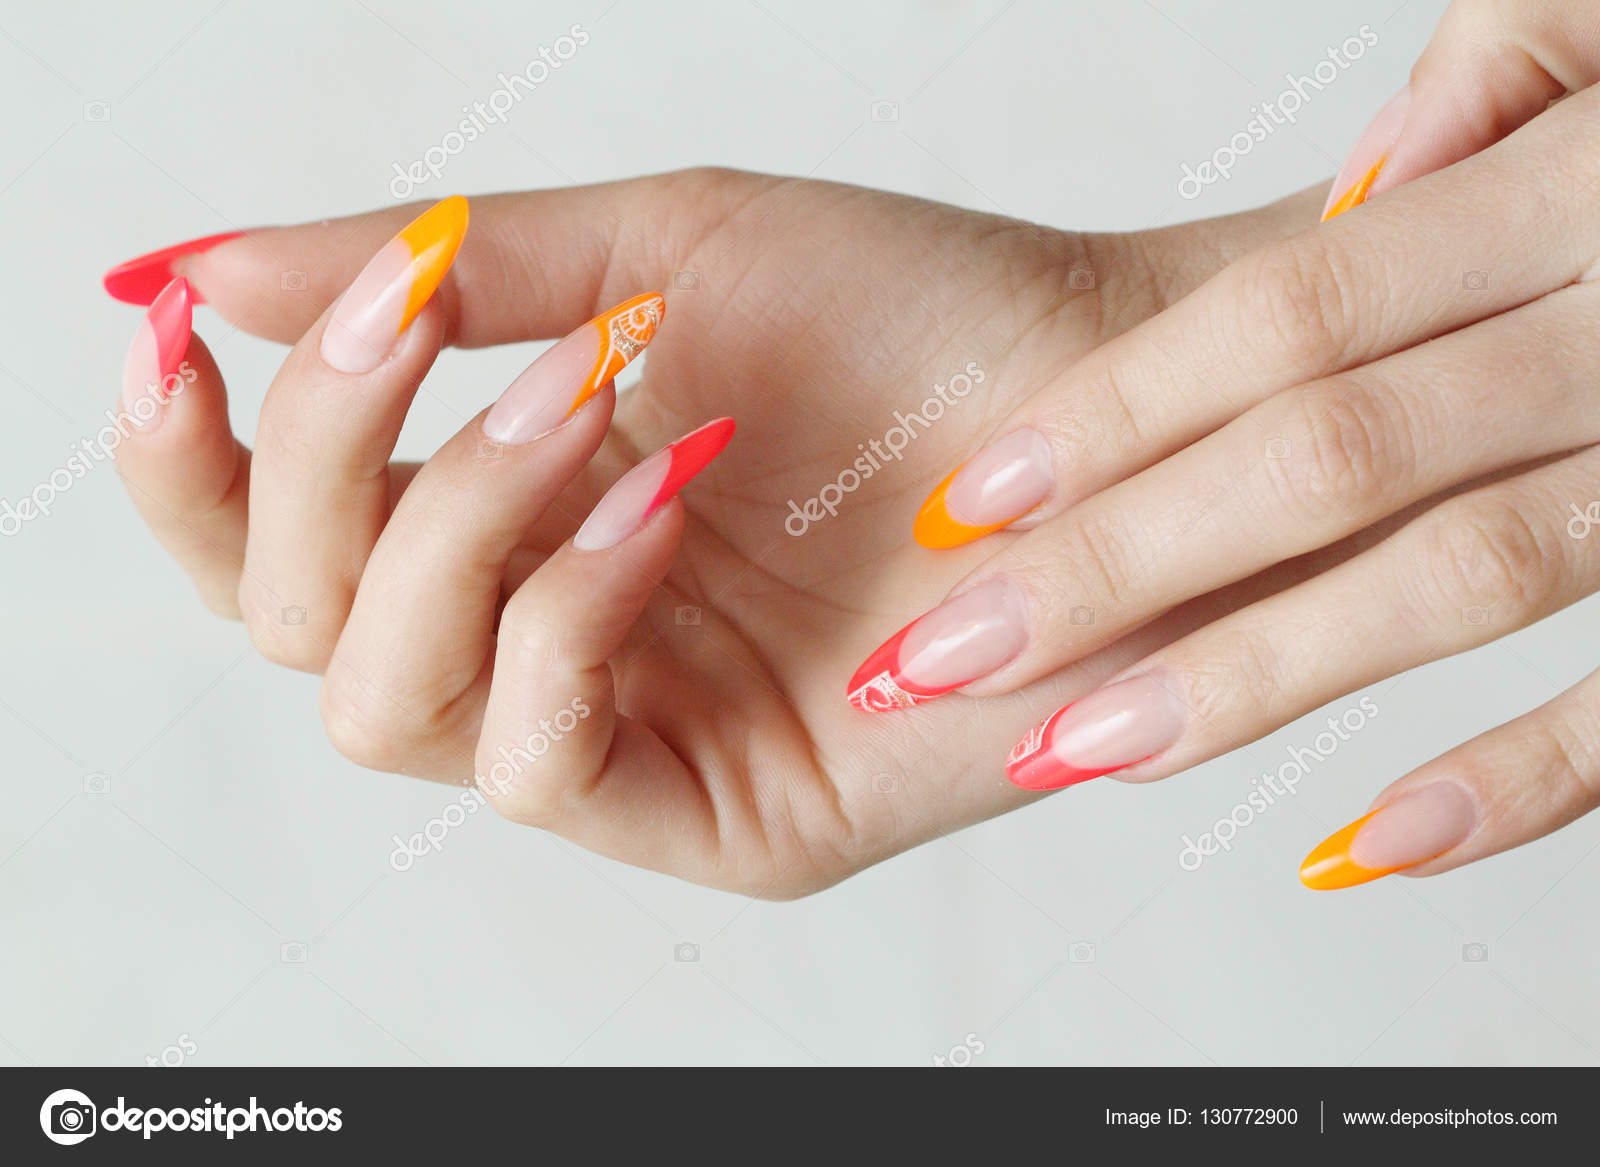 nagel kunst design — Stockfoto © elena1110 #130772900